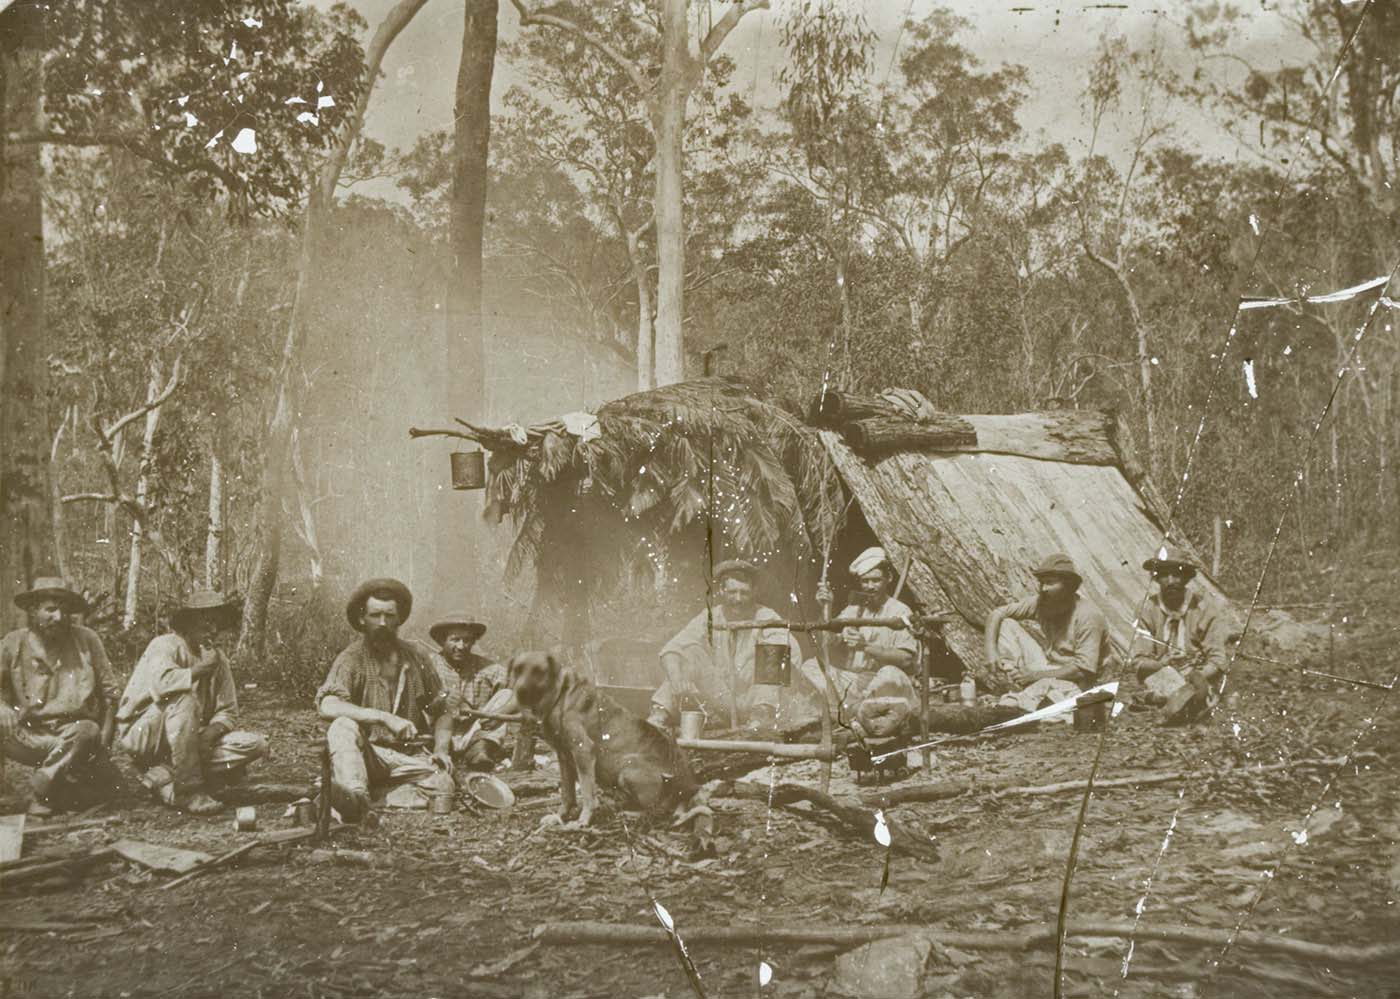 Black and white glass plate negative showing eight men sitting in front of a shelter in the bush. The A-frame shelter is made of bark and leaves and has a billy can hanging at the front. The men are gathered around a smoking fire, with another billy can hanging over the it. A dog sits at the front and centre of the image. - click to view larger image